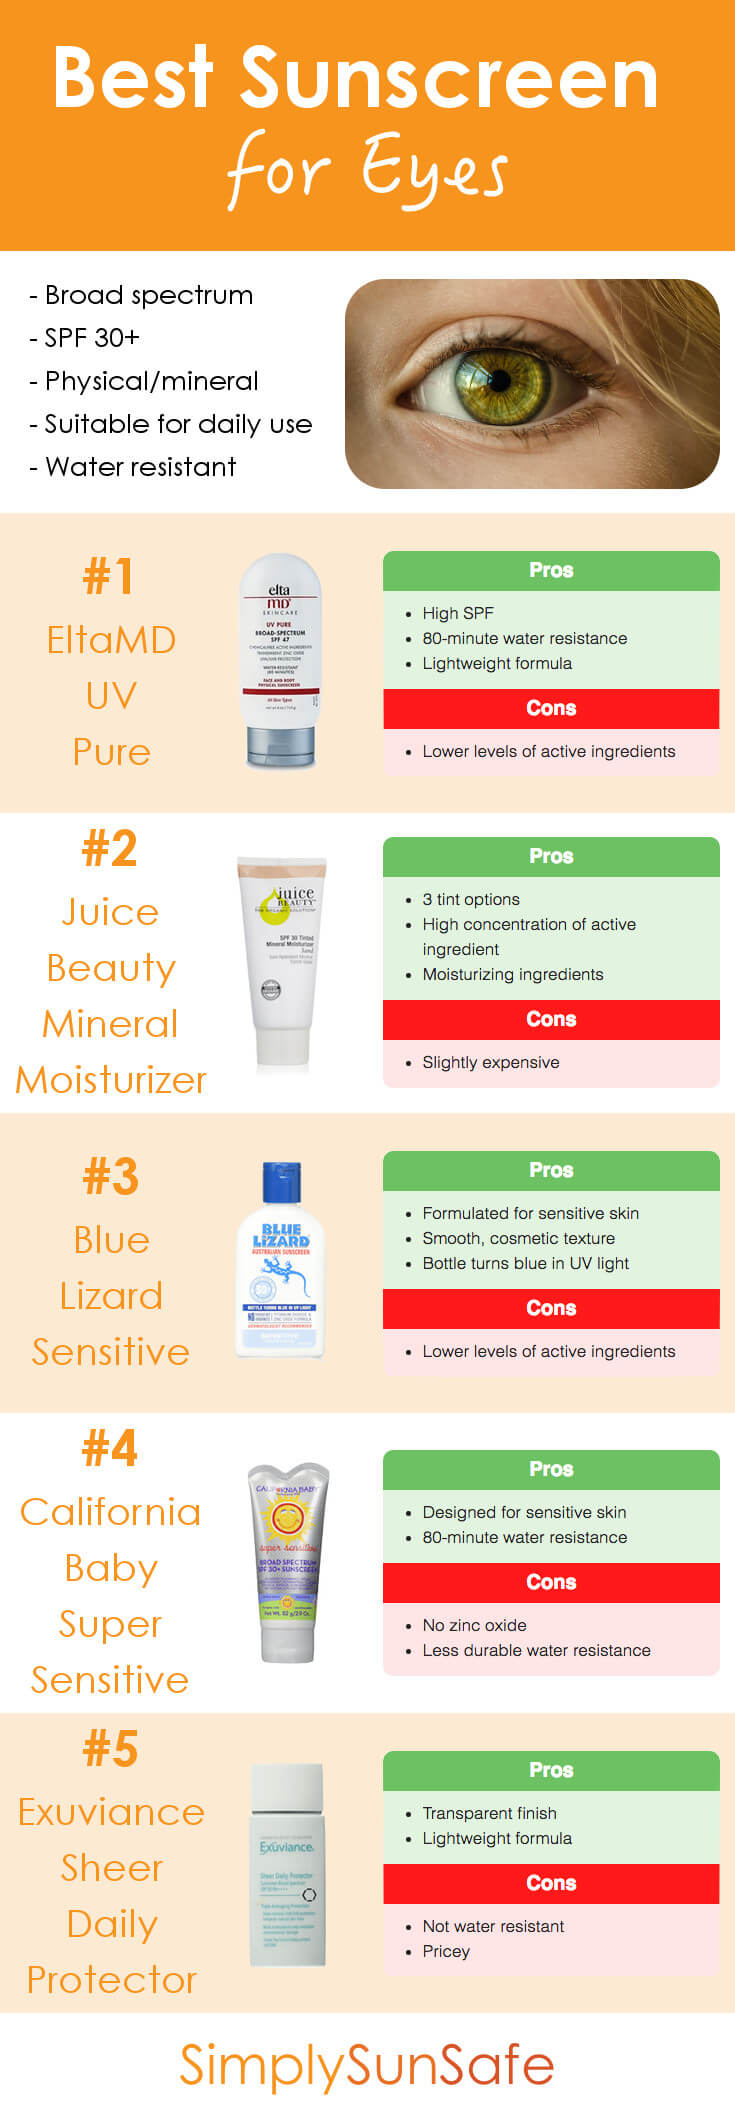 Best Sunscreen for Eyes Pinterest